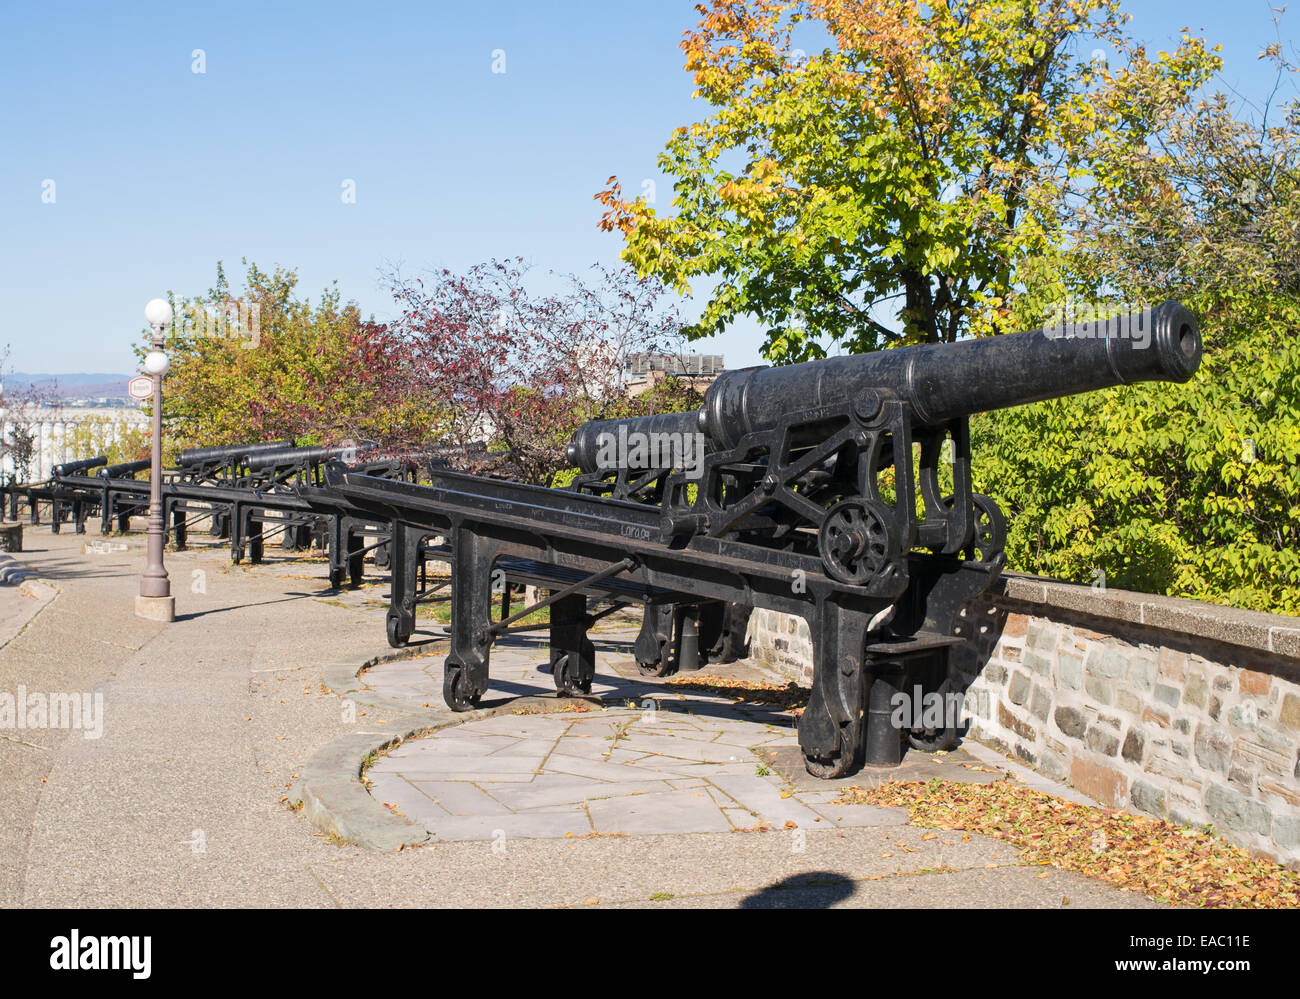 Row of old British cannon mounted on swiveling carriages, part of the Quebec battery, Canada. - Stock Image